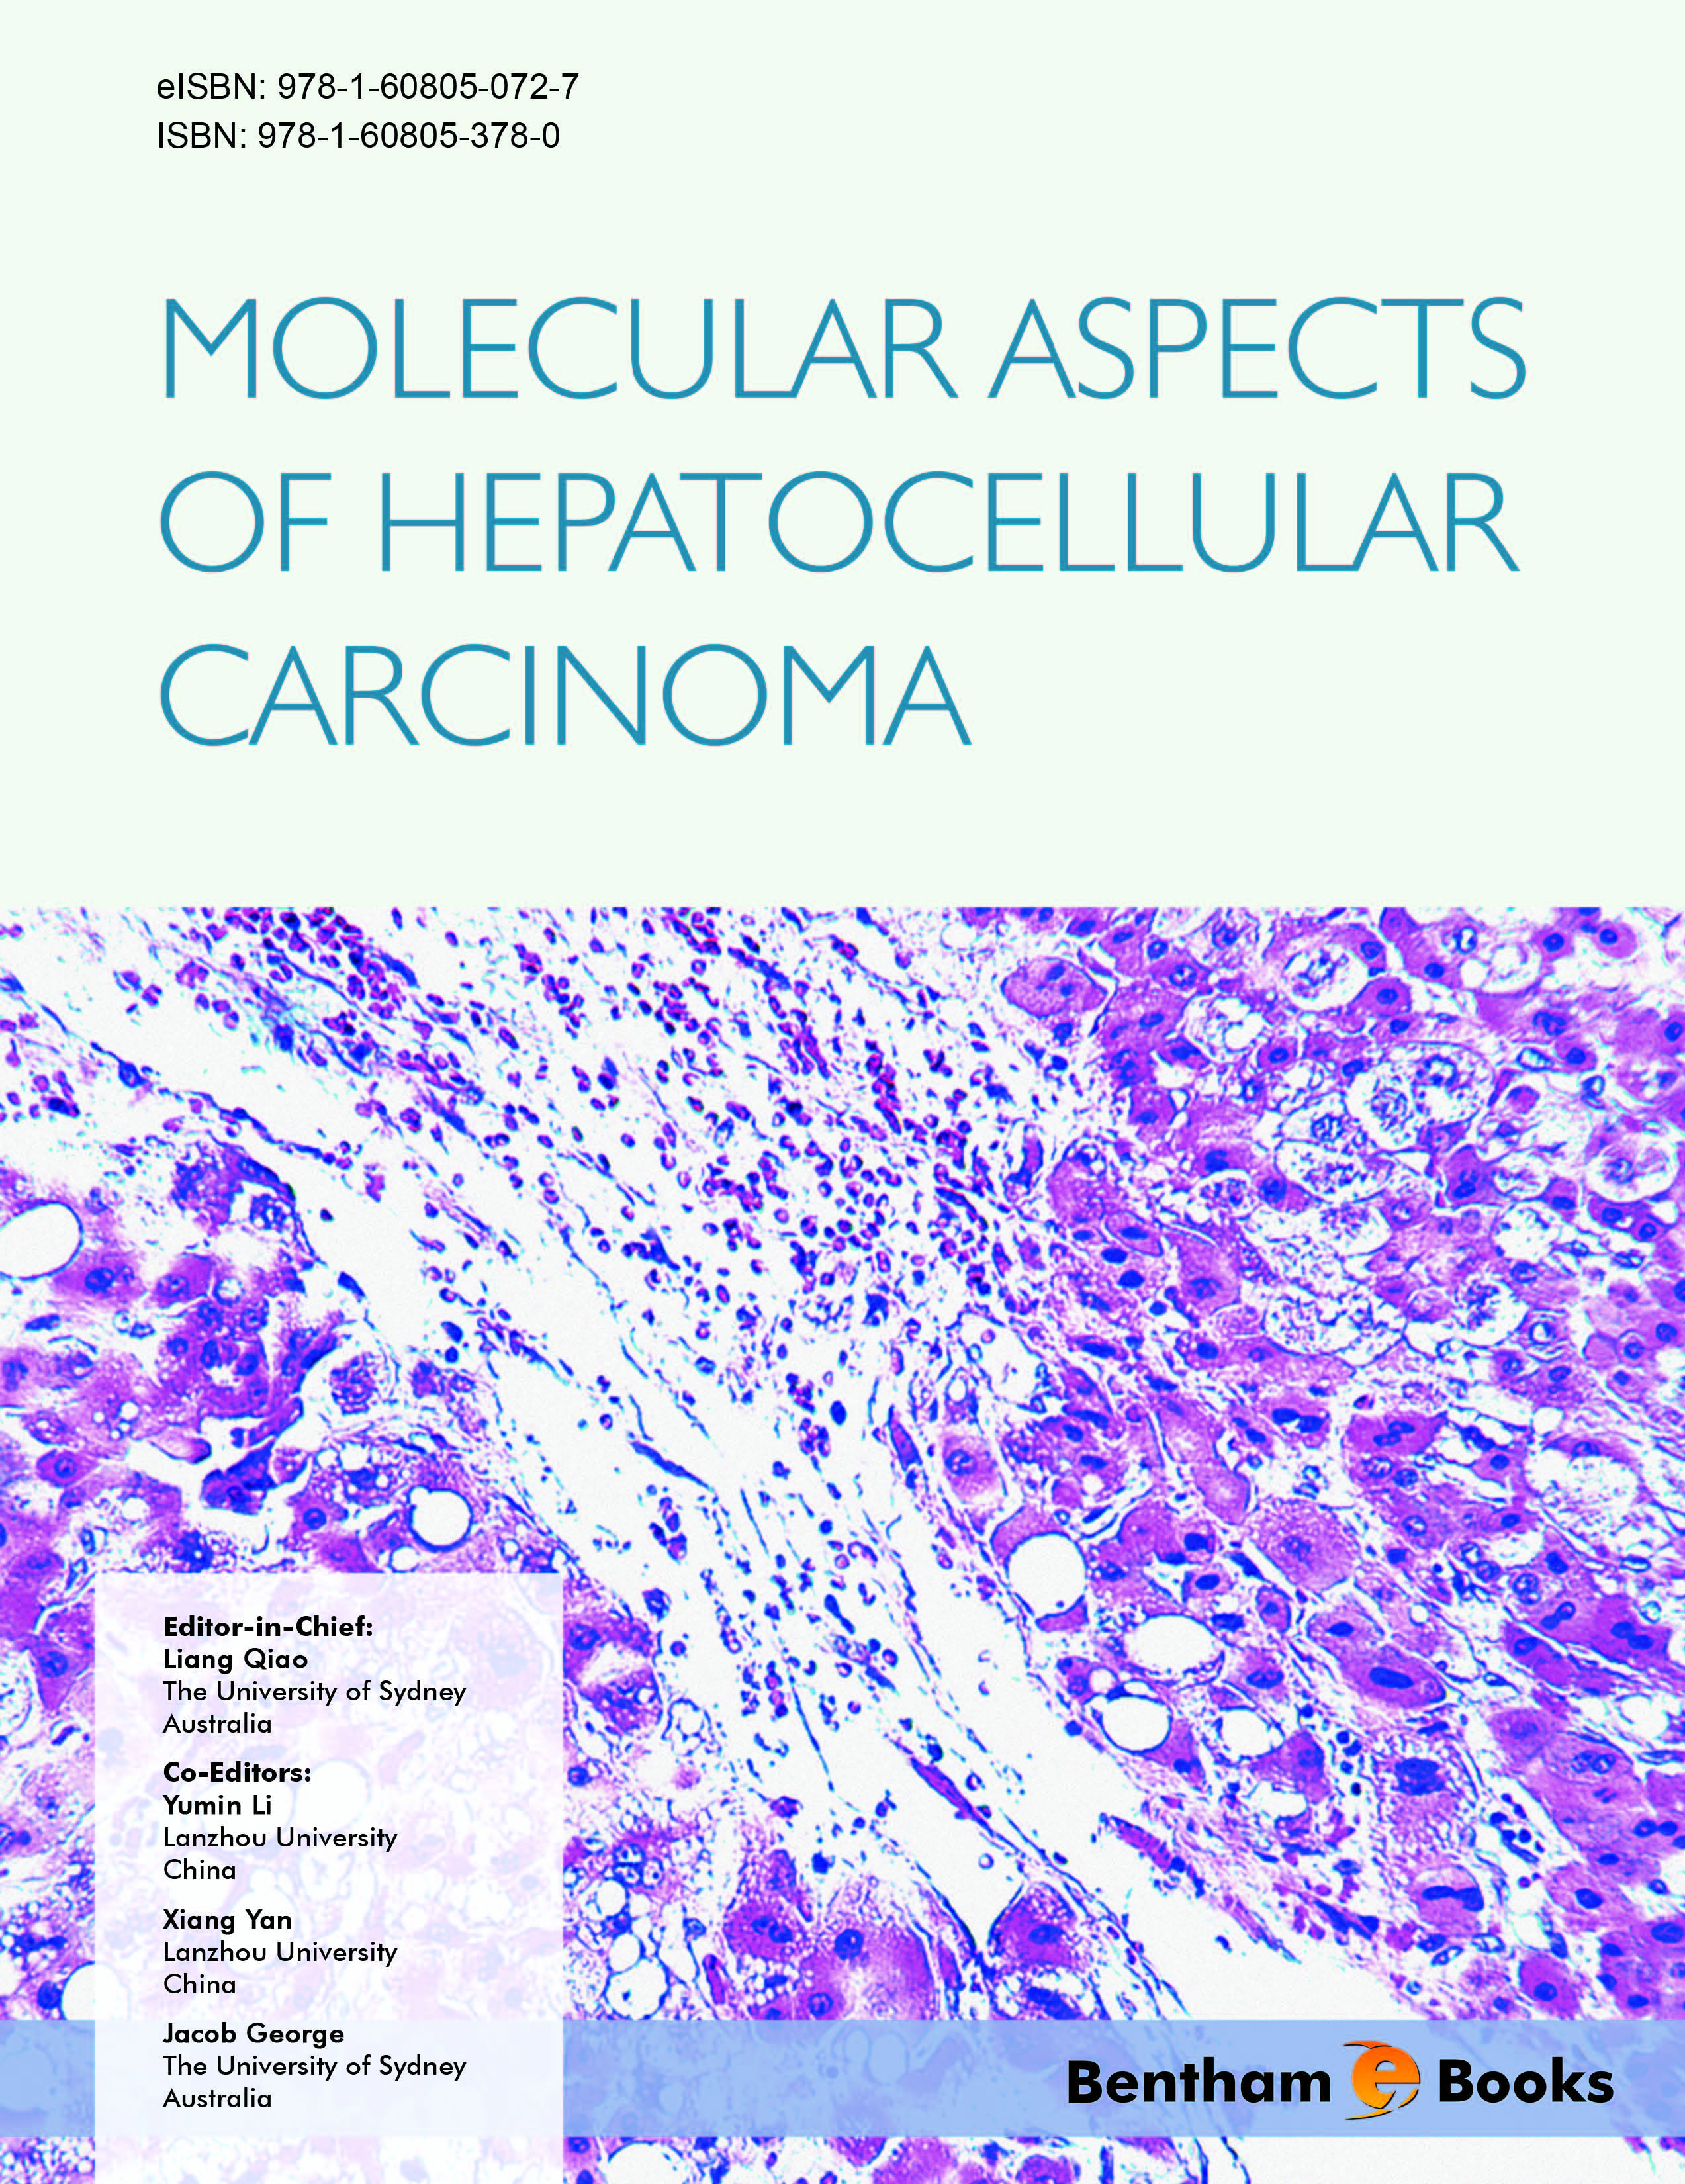 Molecular Aspects of Hepatocellular Carcinoma